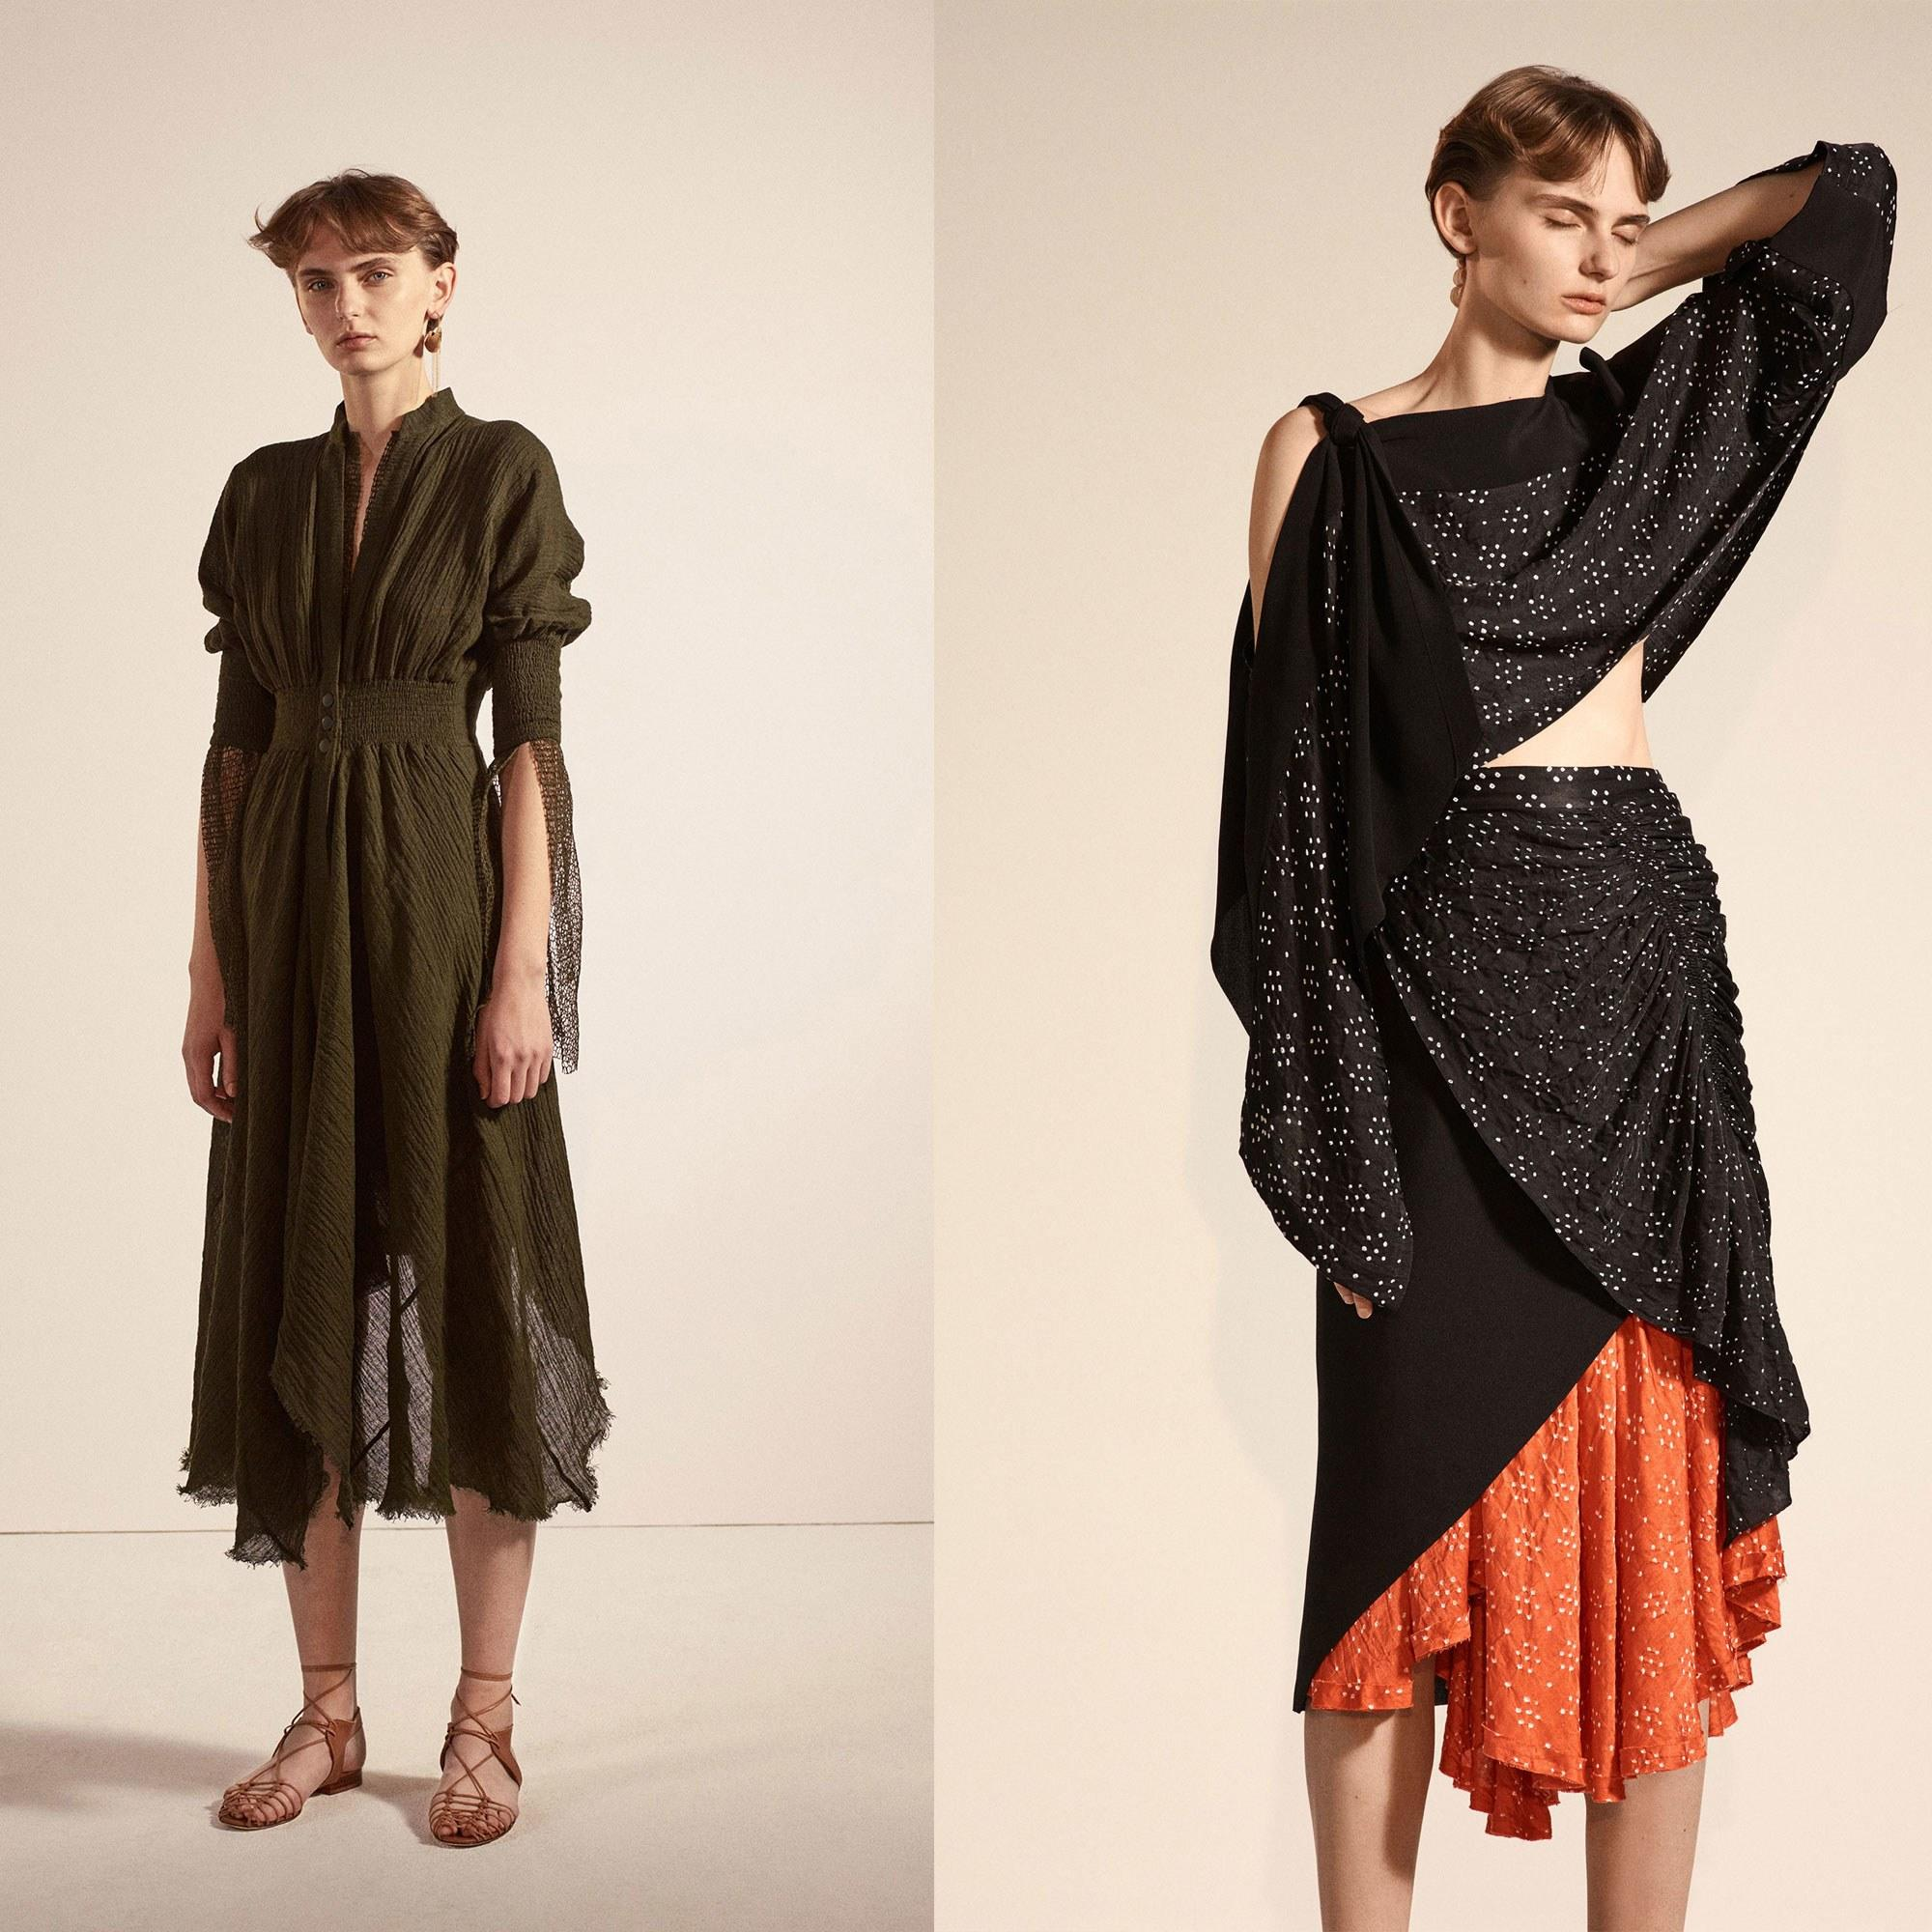 Kitx S Kit Willow Is One Of Several Designers Showing